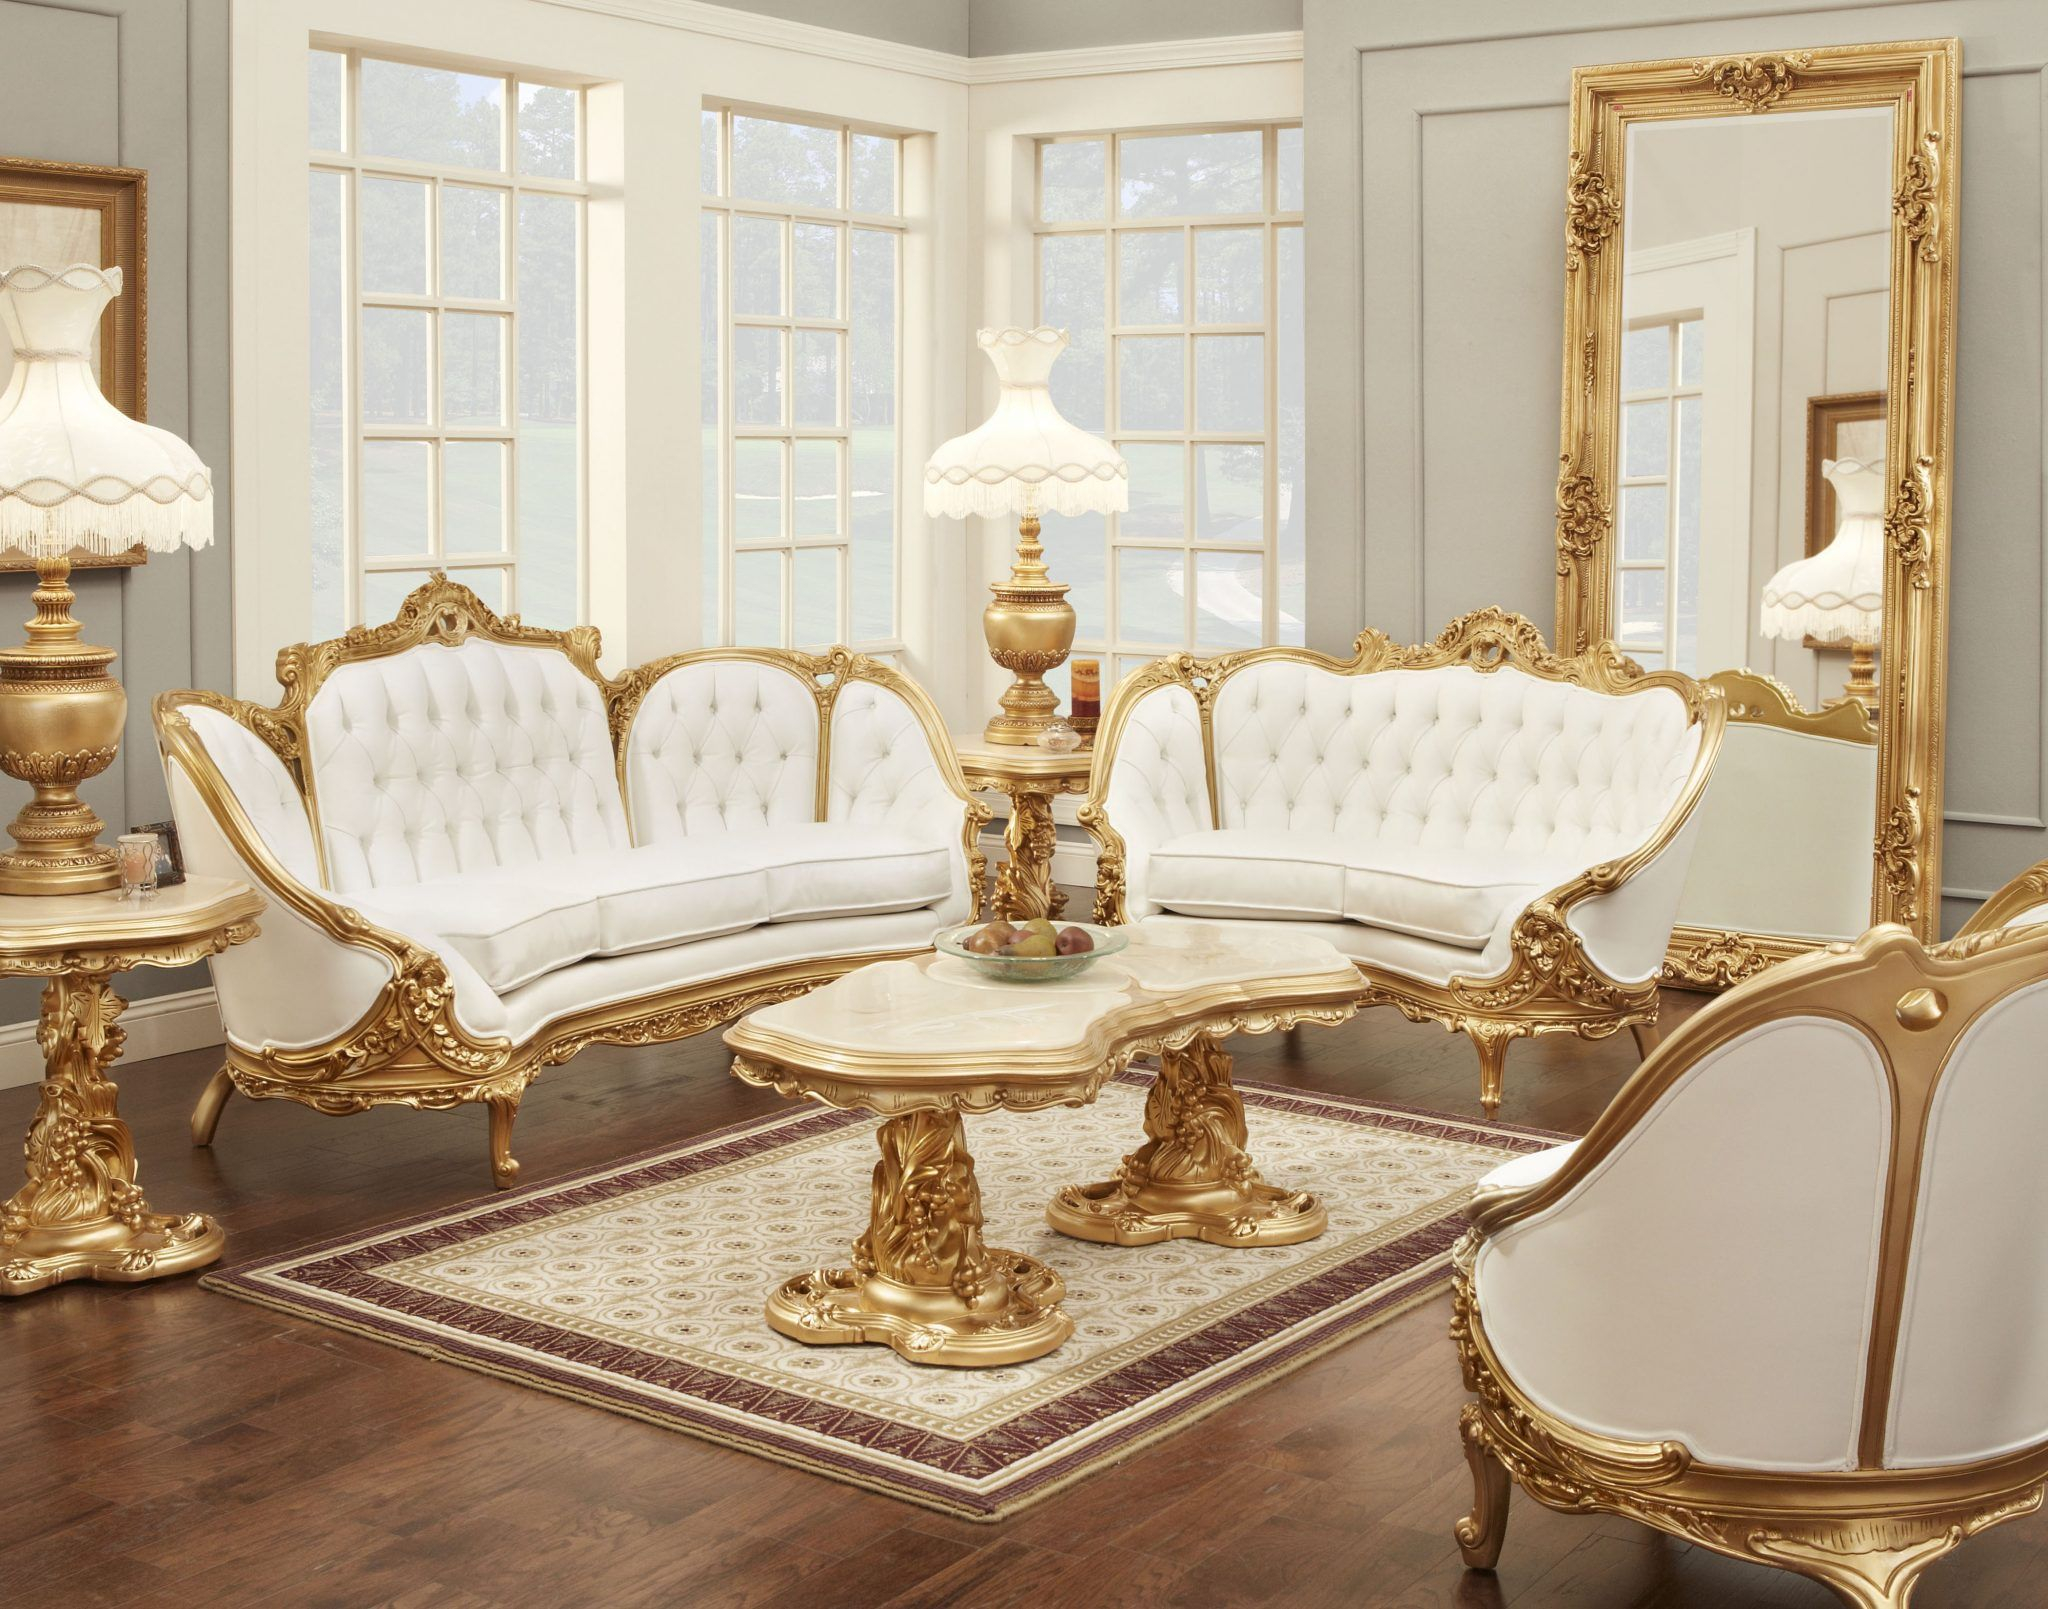 Victorian Living Room 634 Room Victorian Living Room Gold Room regarding Victorian Living Room Set